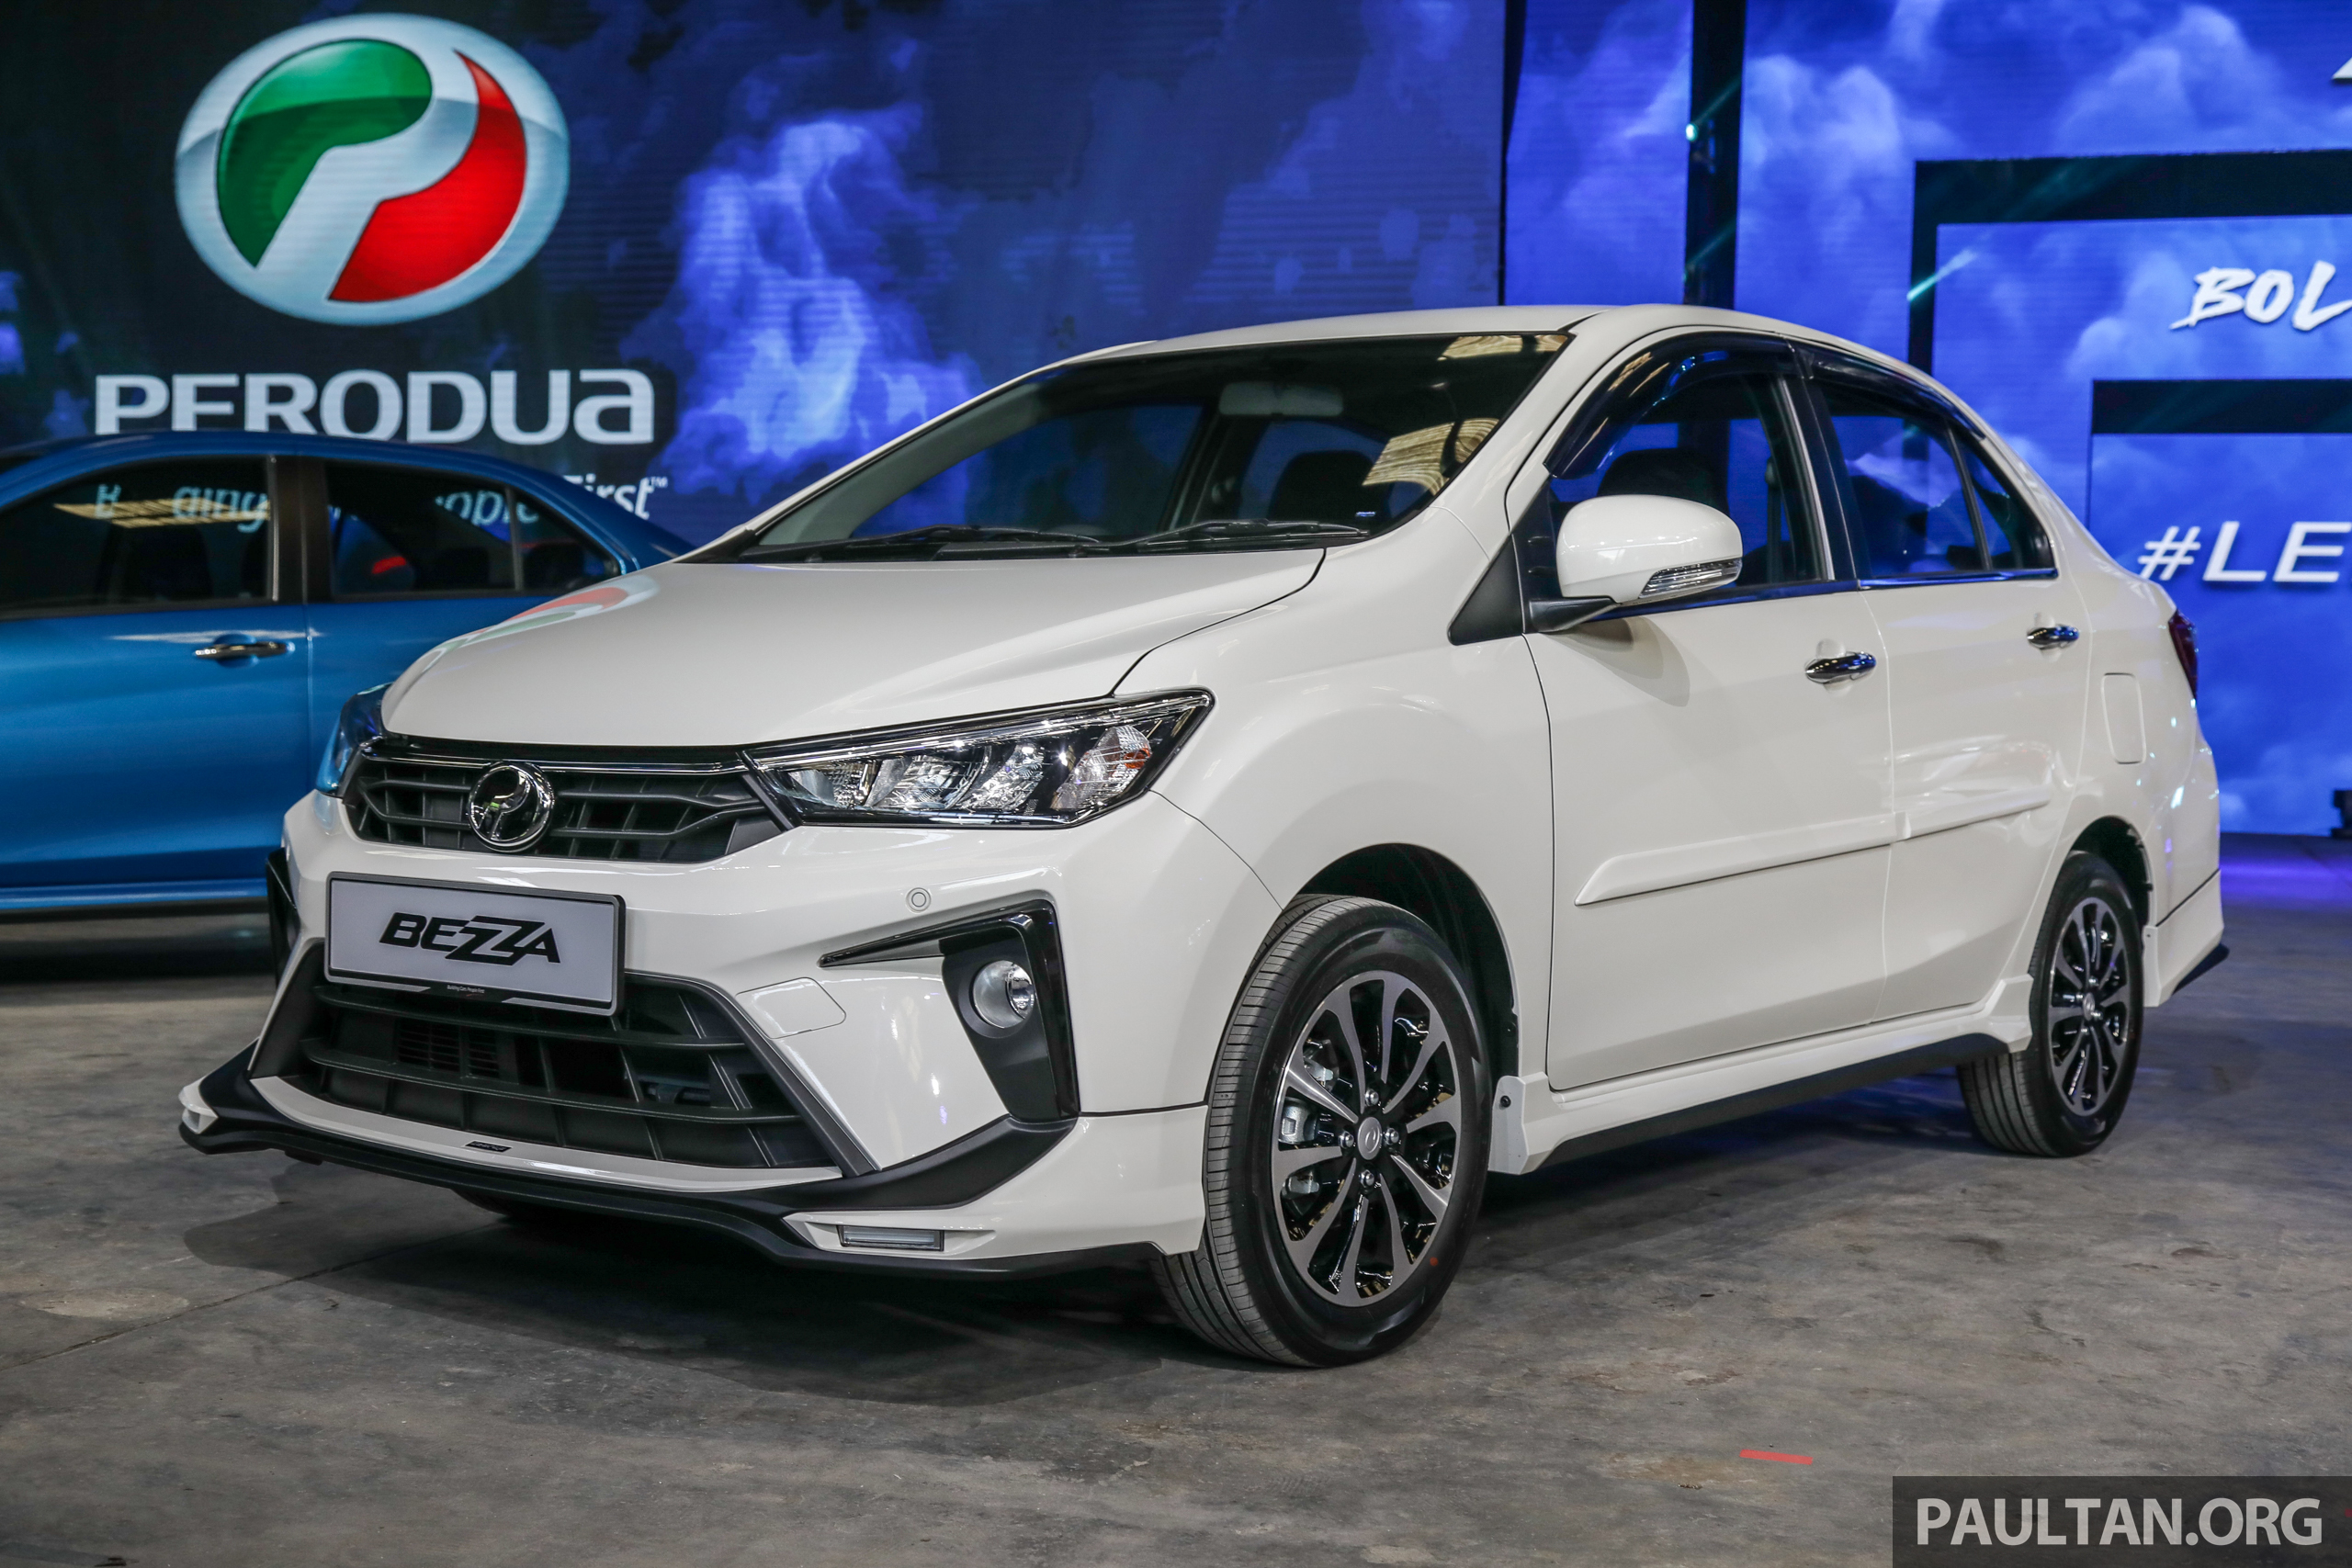 2020 Perodua Bezza Facelift 2 000 Units Delivered Since Launch